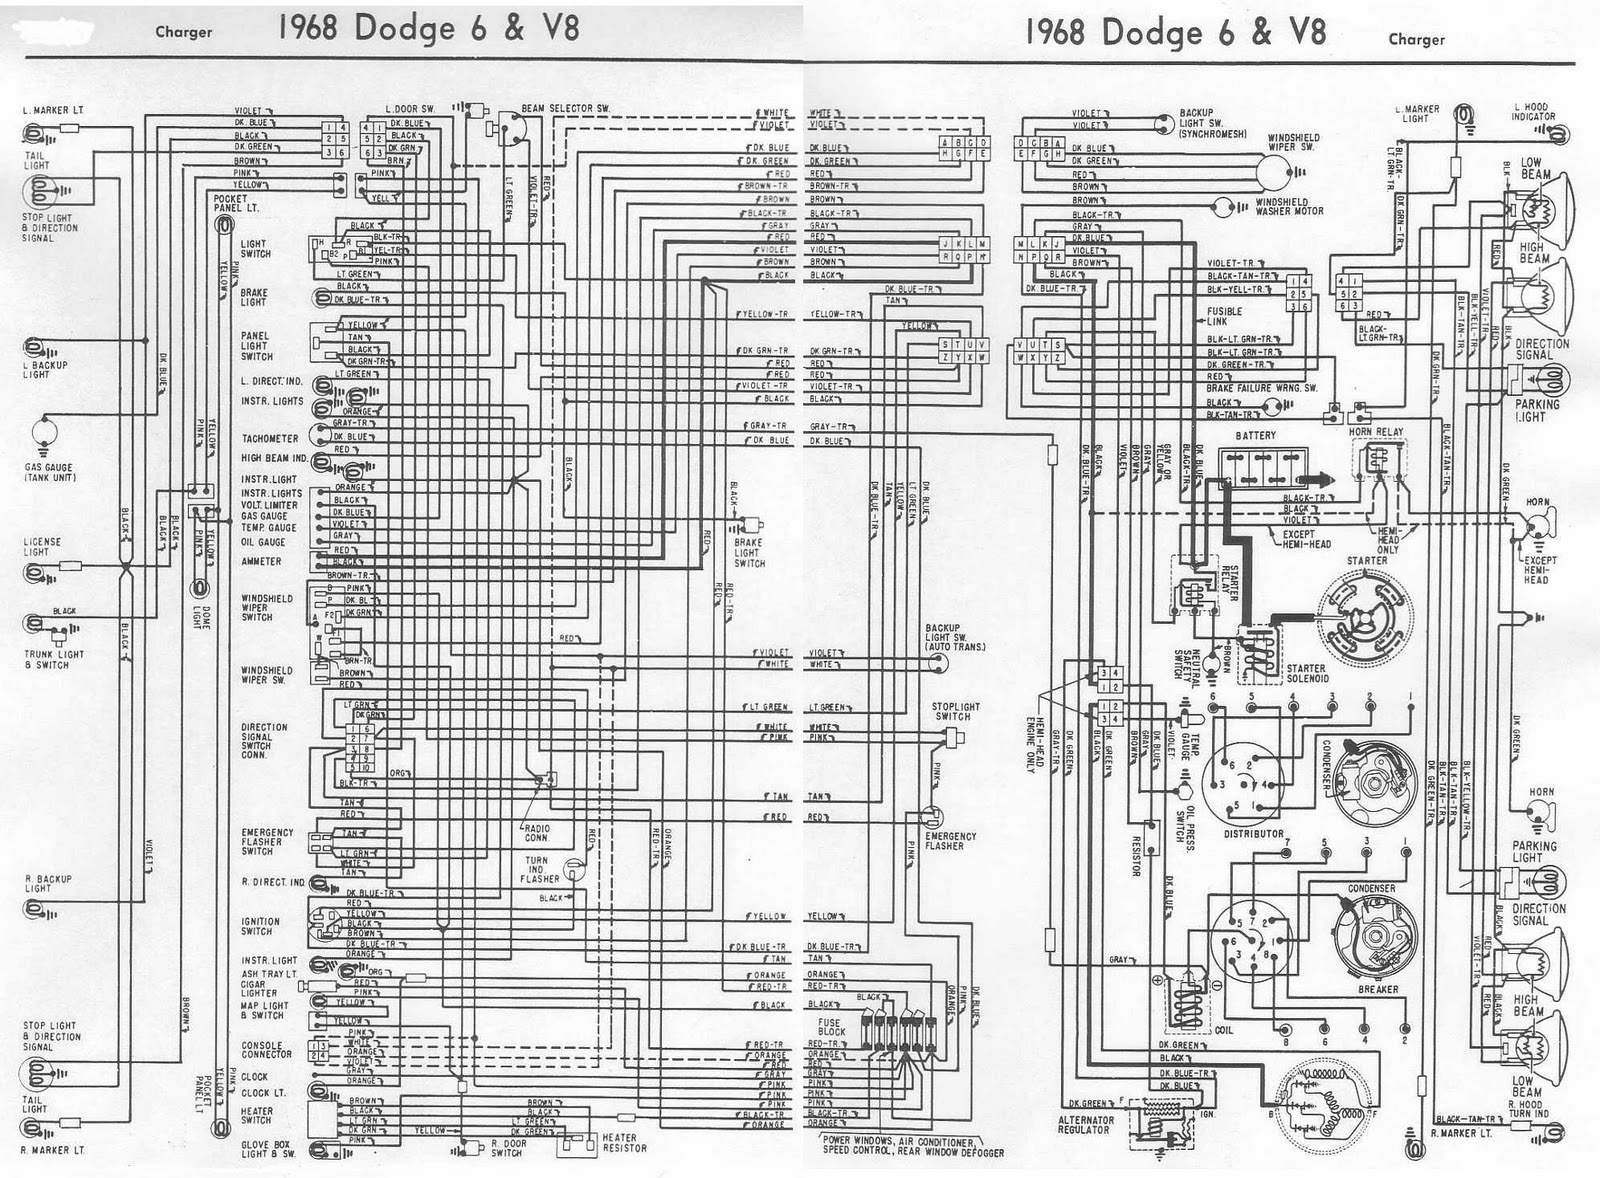 Dodge+Charger+1968+6+and+V8+Complete+Electrical+Wiring+Diagram dodge charger 1968 6 and v8 complete electrical wiring diagram 1970 dodge charger wiring diagram at gsmx.co